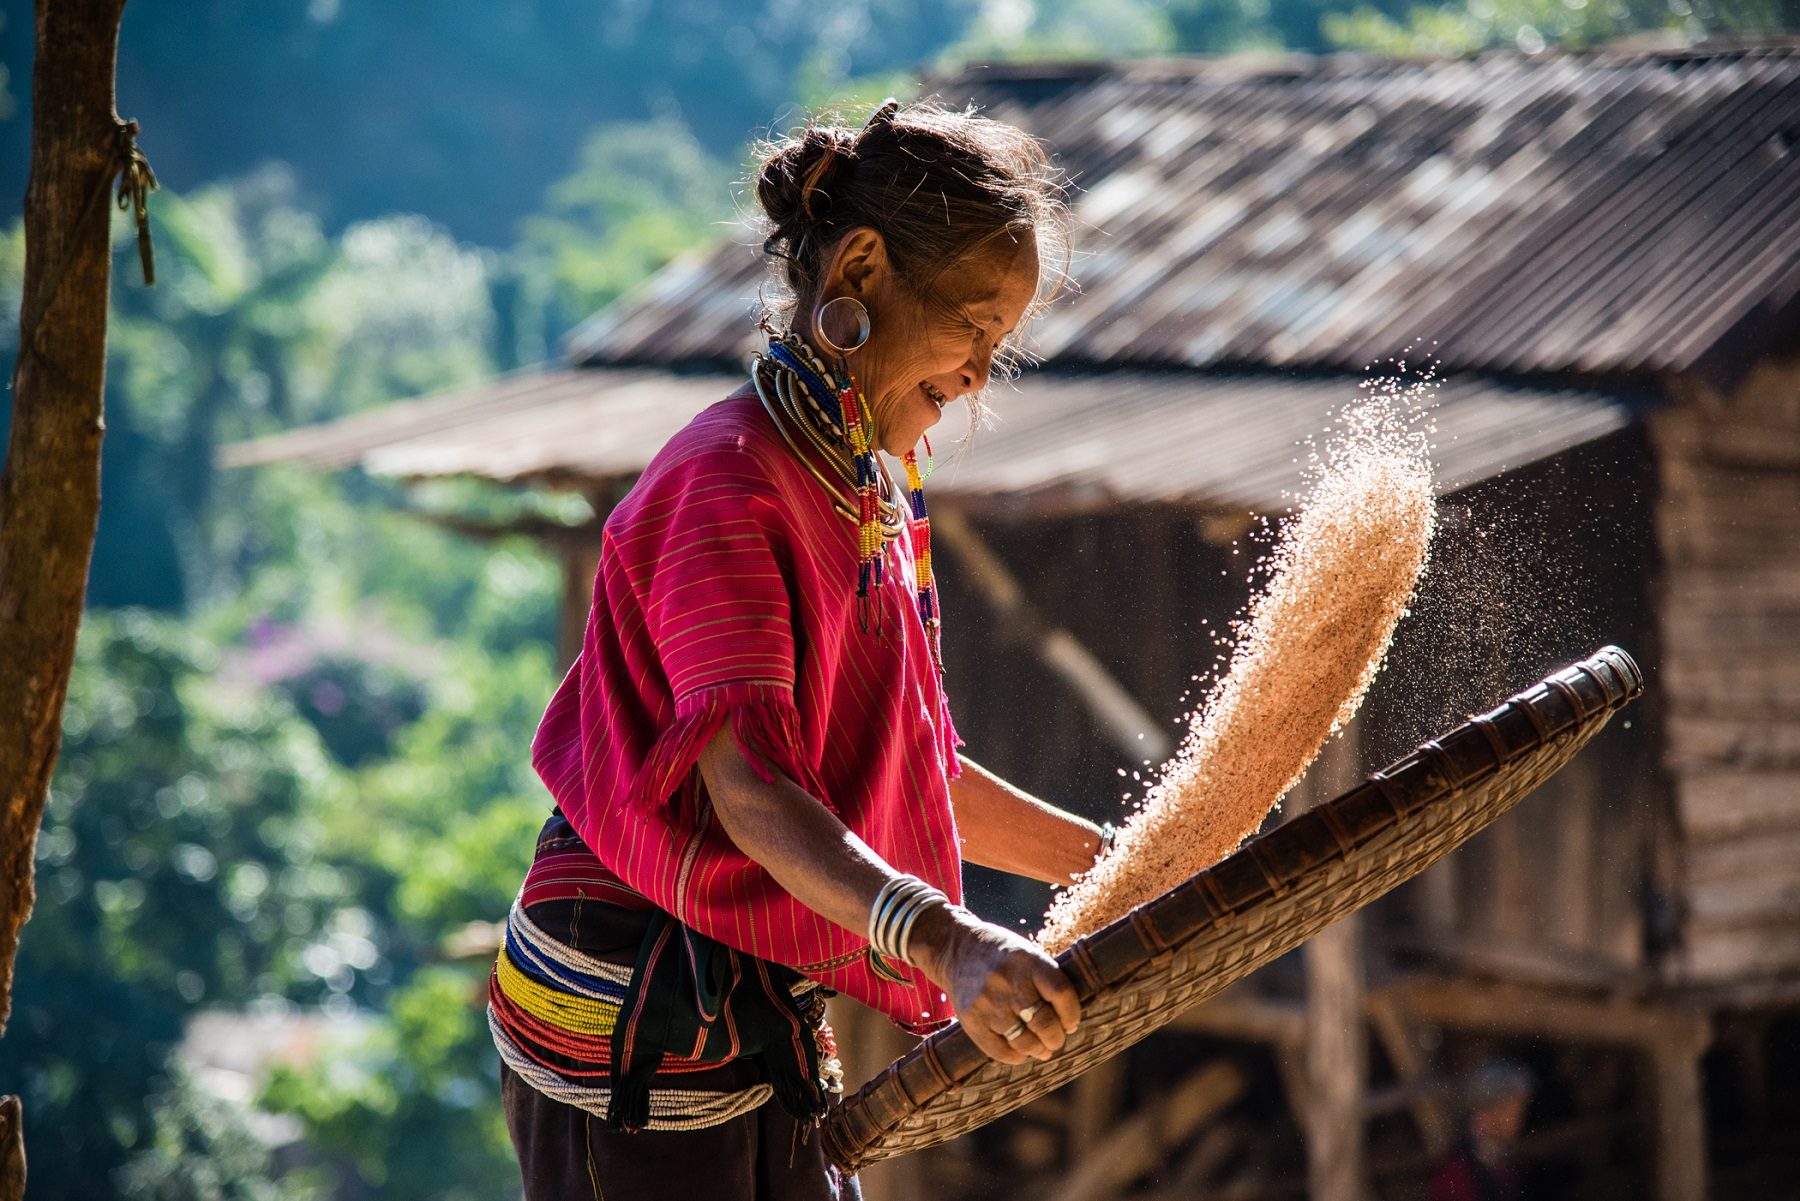 43_Kathleen_Gerber_Winnowing Rice.jpg